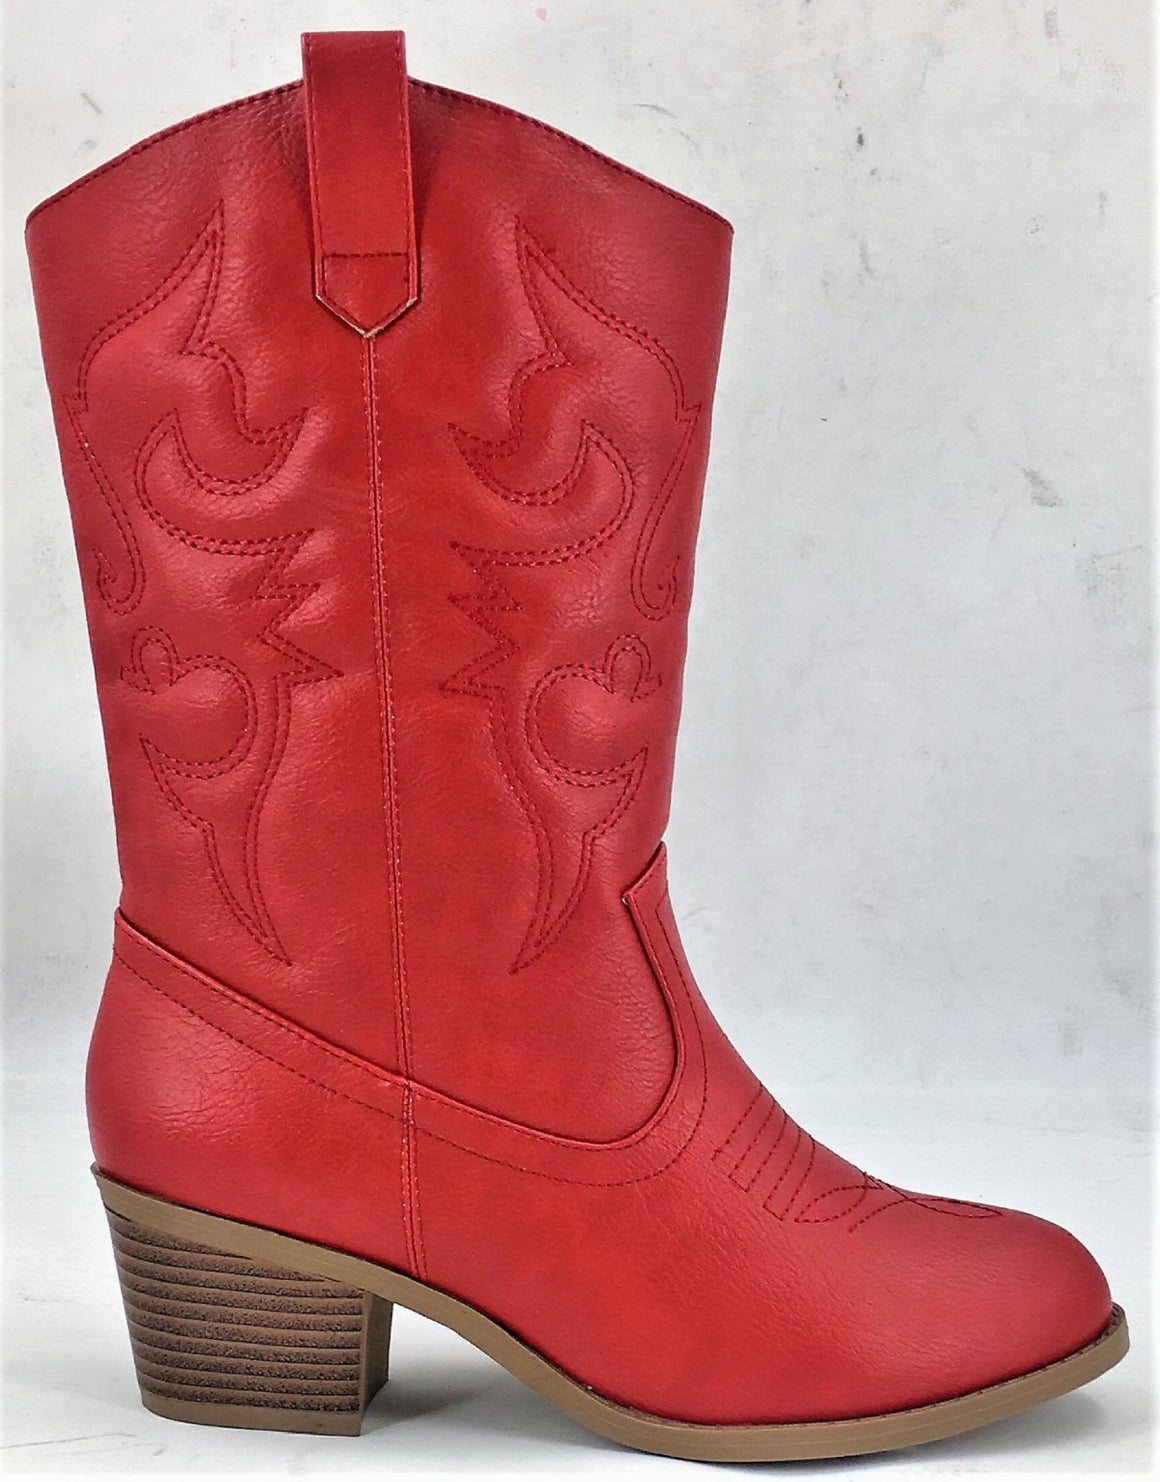 BDW-14W Western Cowboy Cowgirl Mid Calf Pointed Toe Stitched Boots Red